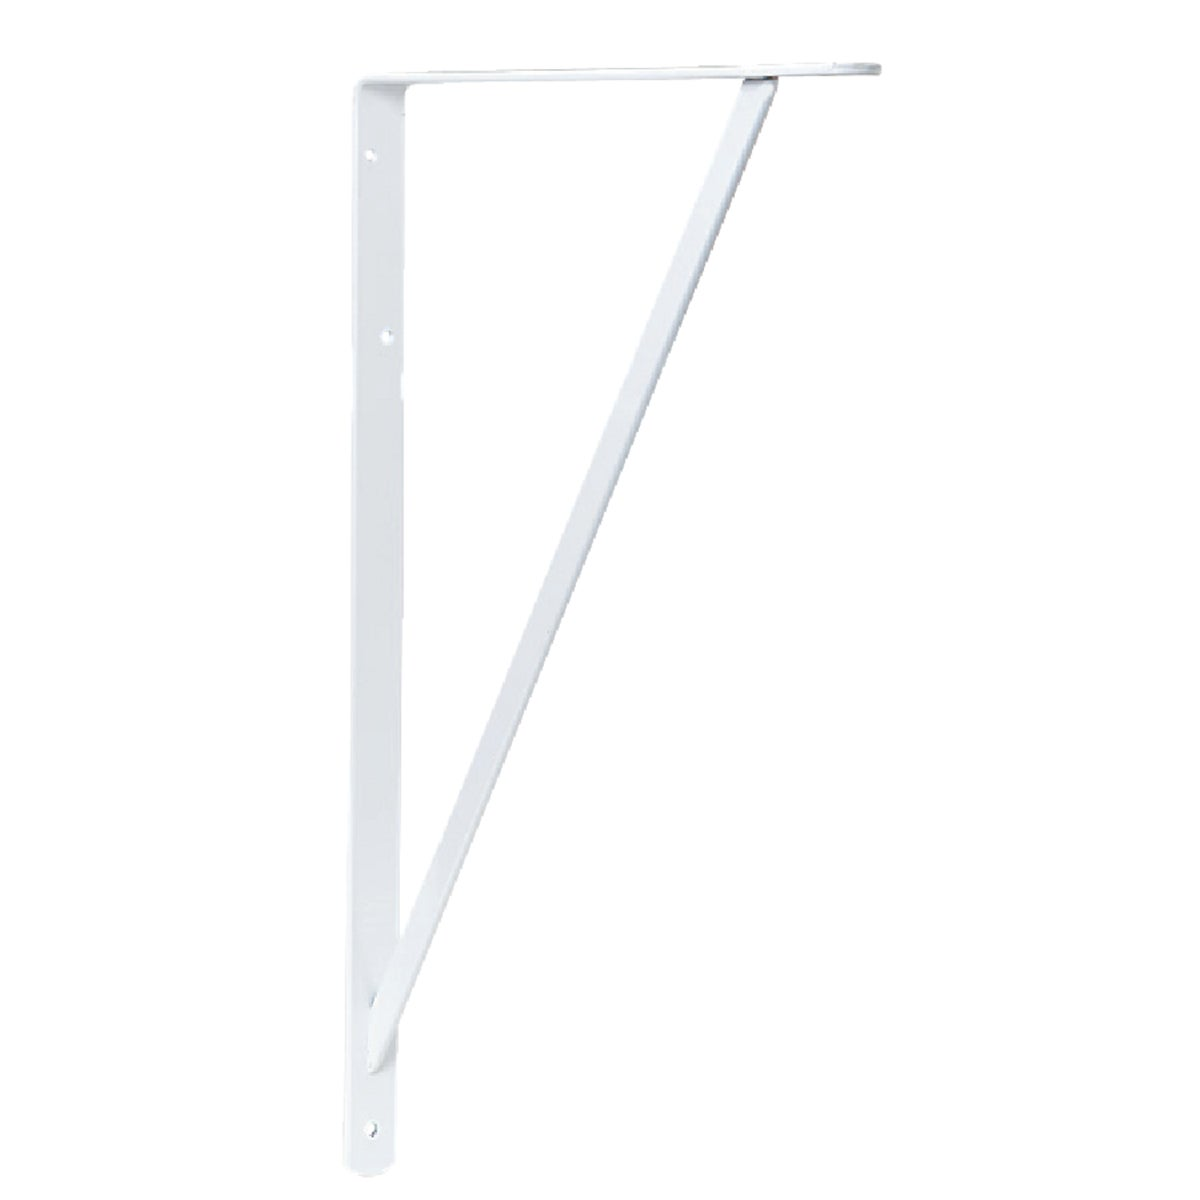 "22"" WHITE BRACKET - 208WH550 by Knape & Vogt Mfg Co"